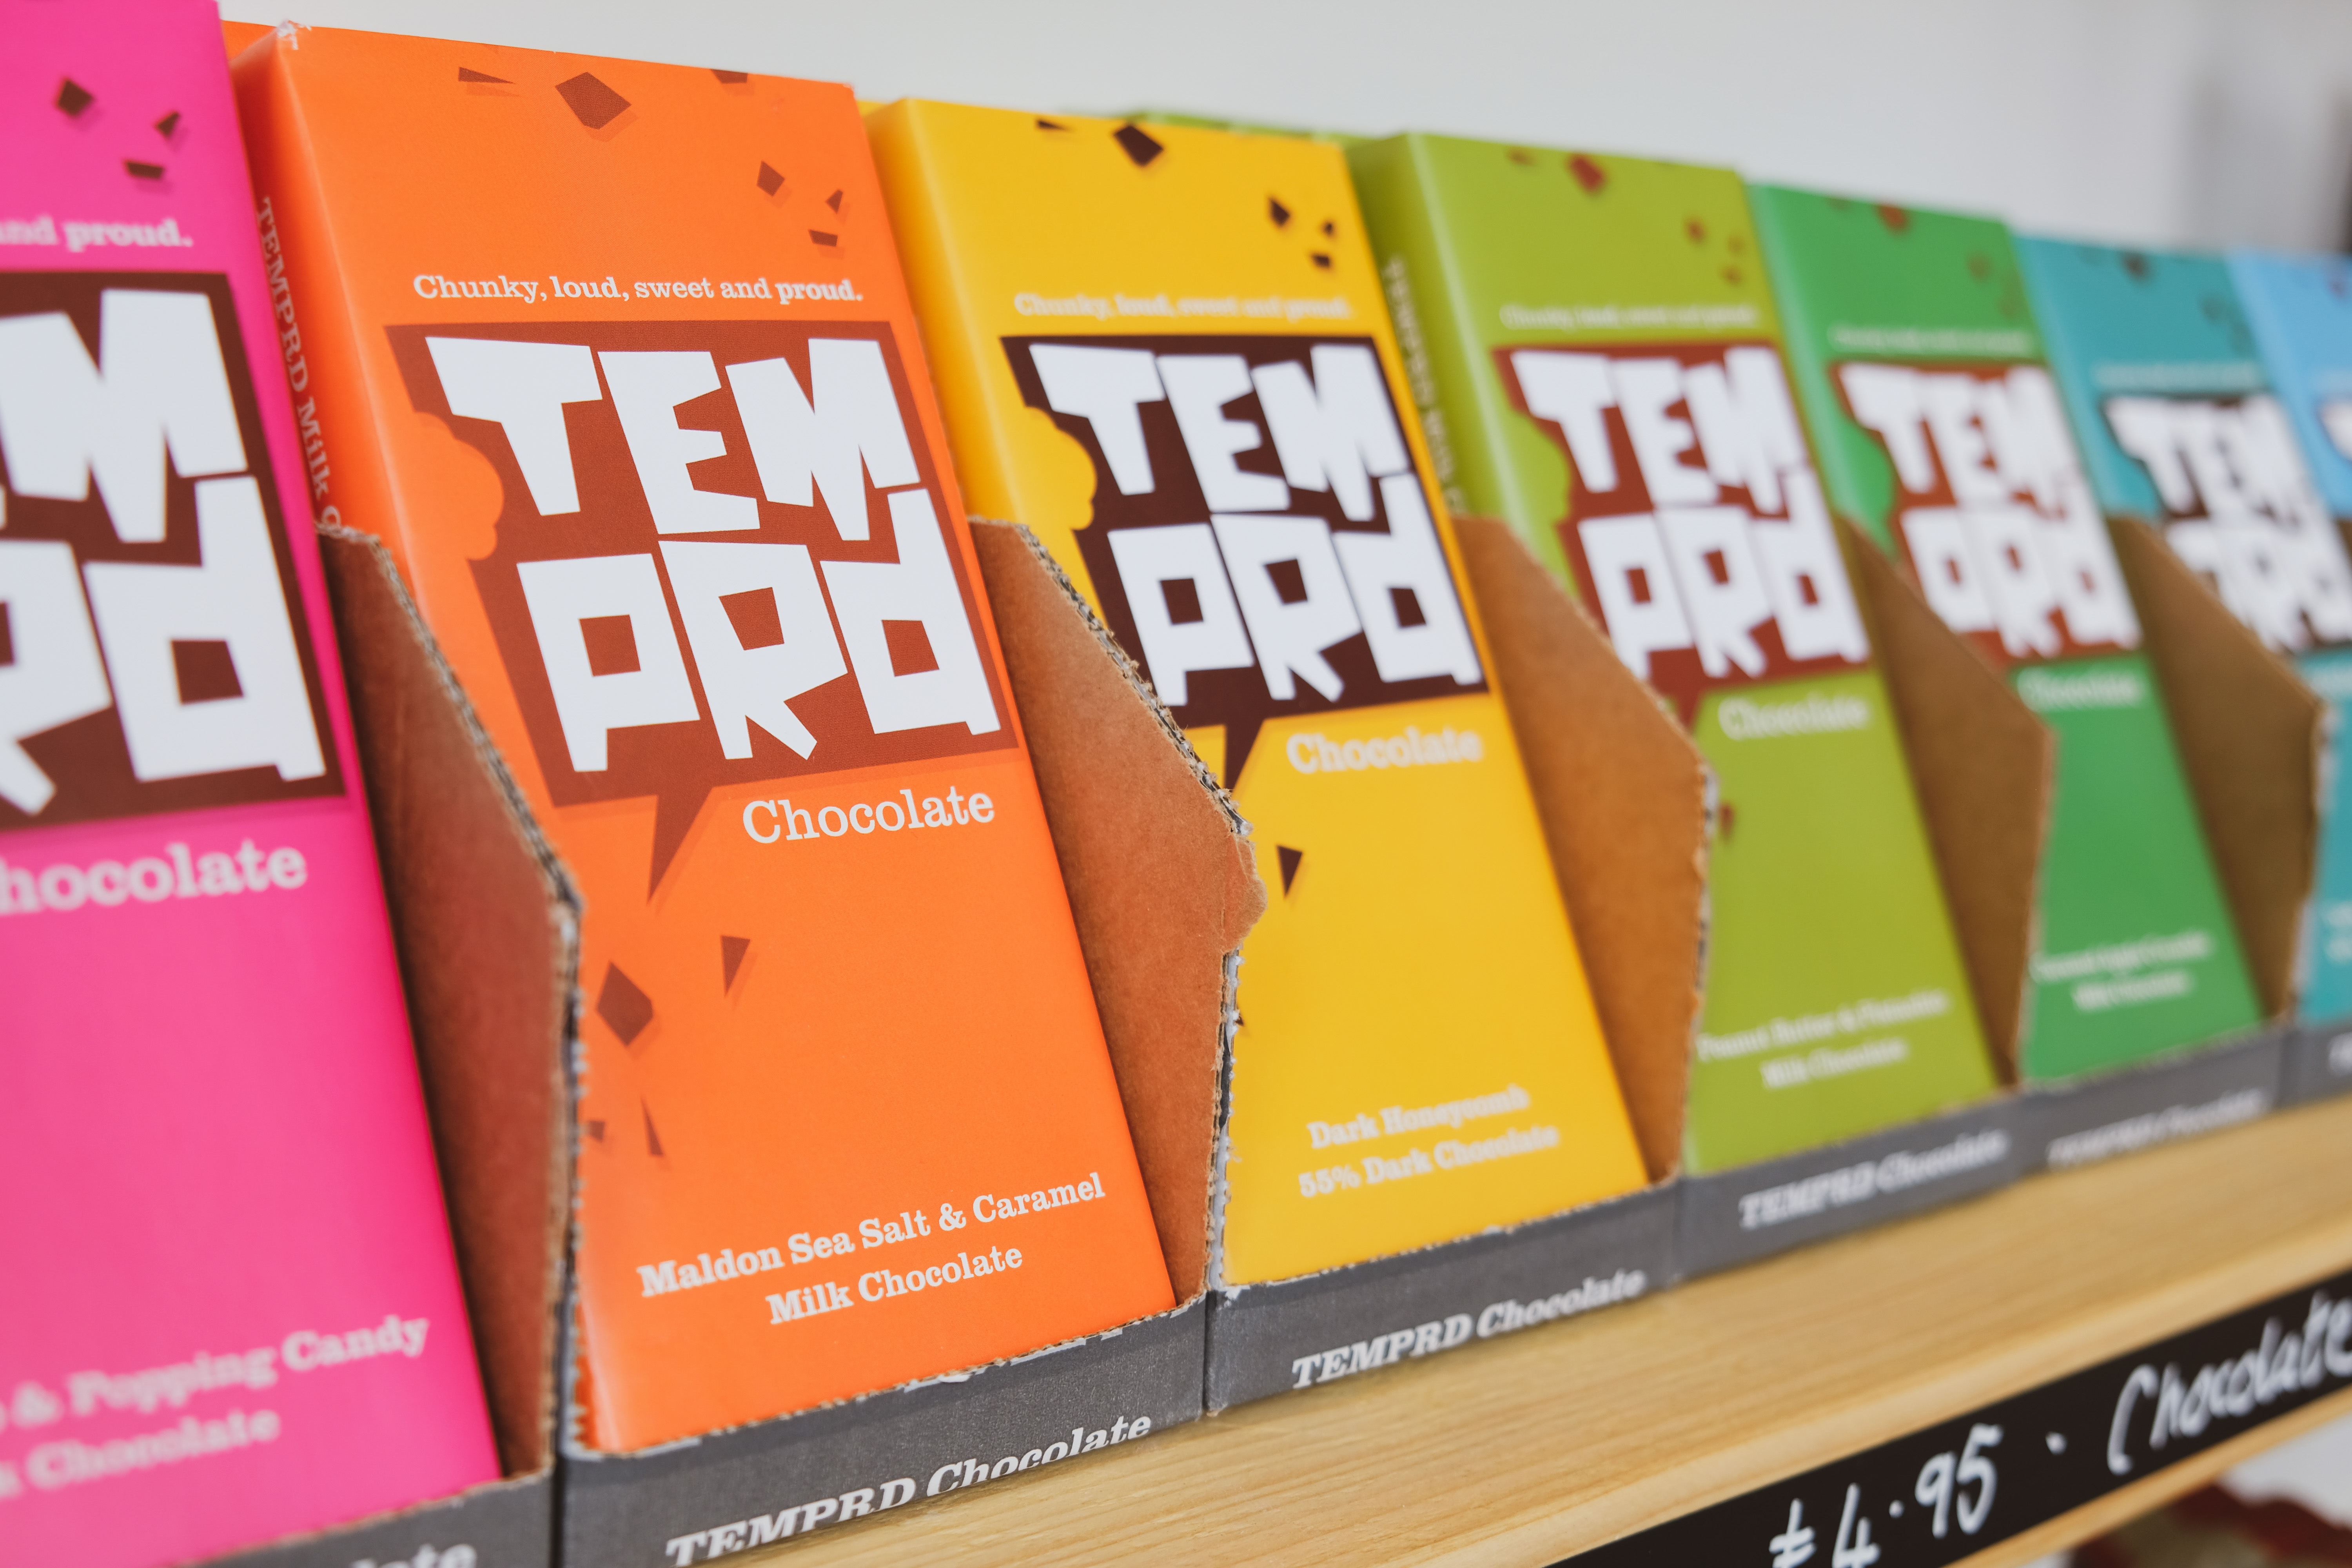 Temprd chocolate range available at the Essex Produce Co. in Kelvedon, Essex.